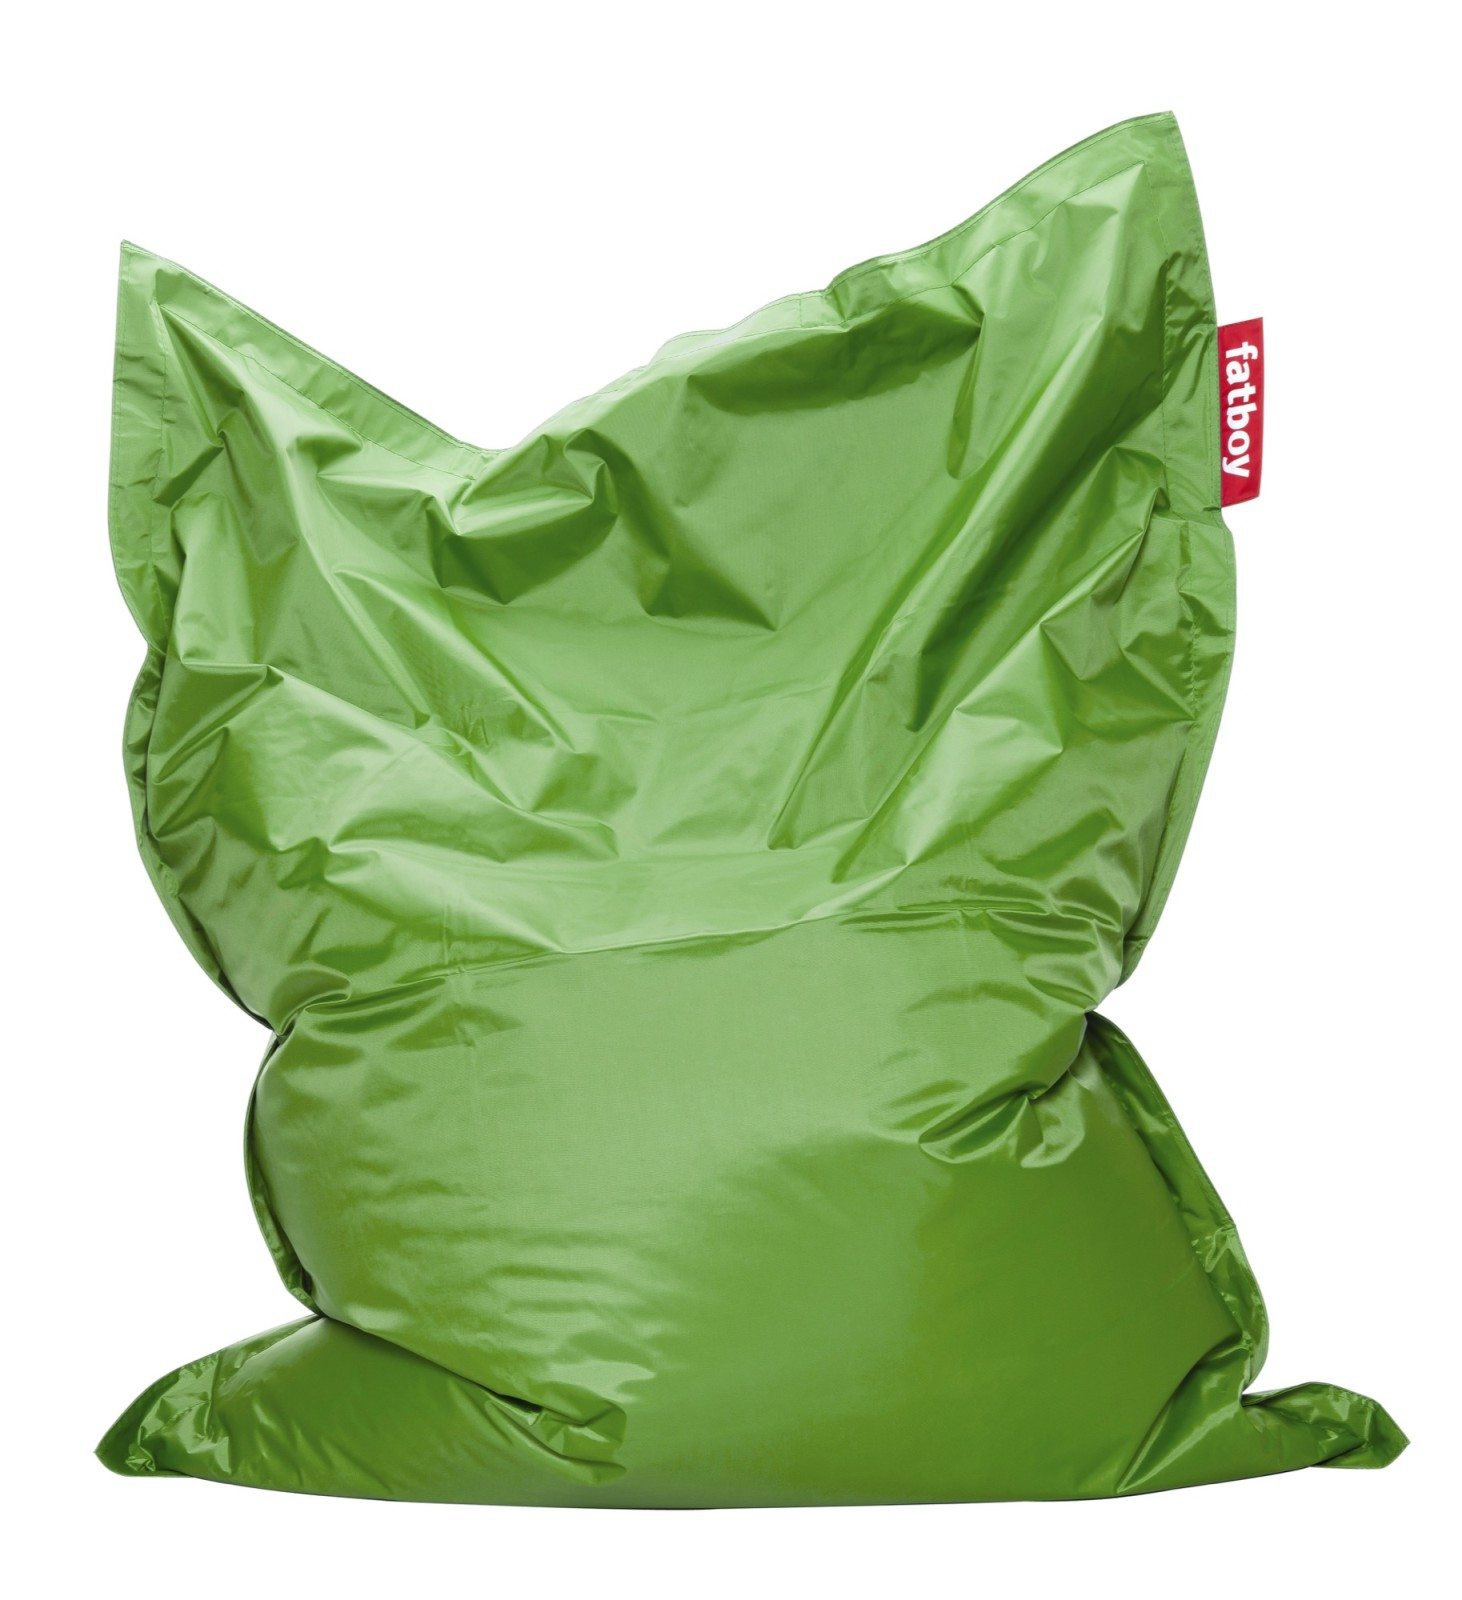 Original Bean Bag Grass Green